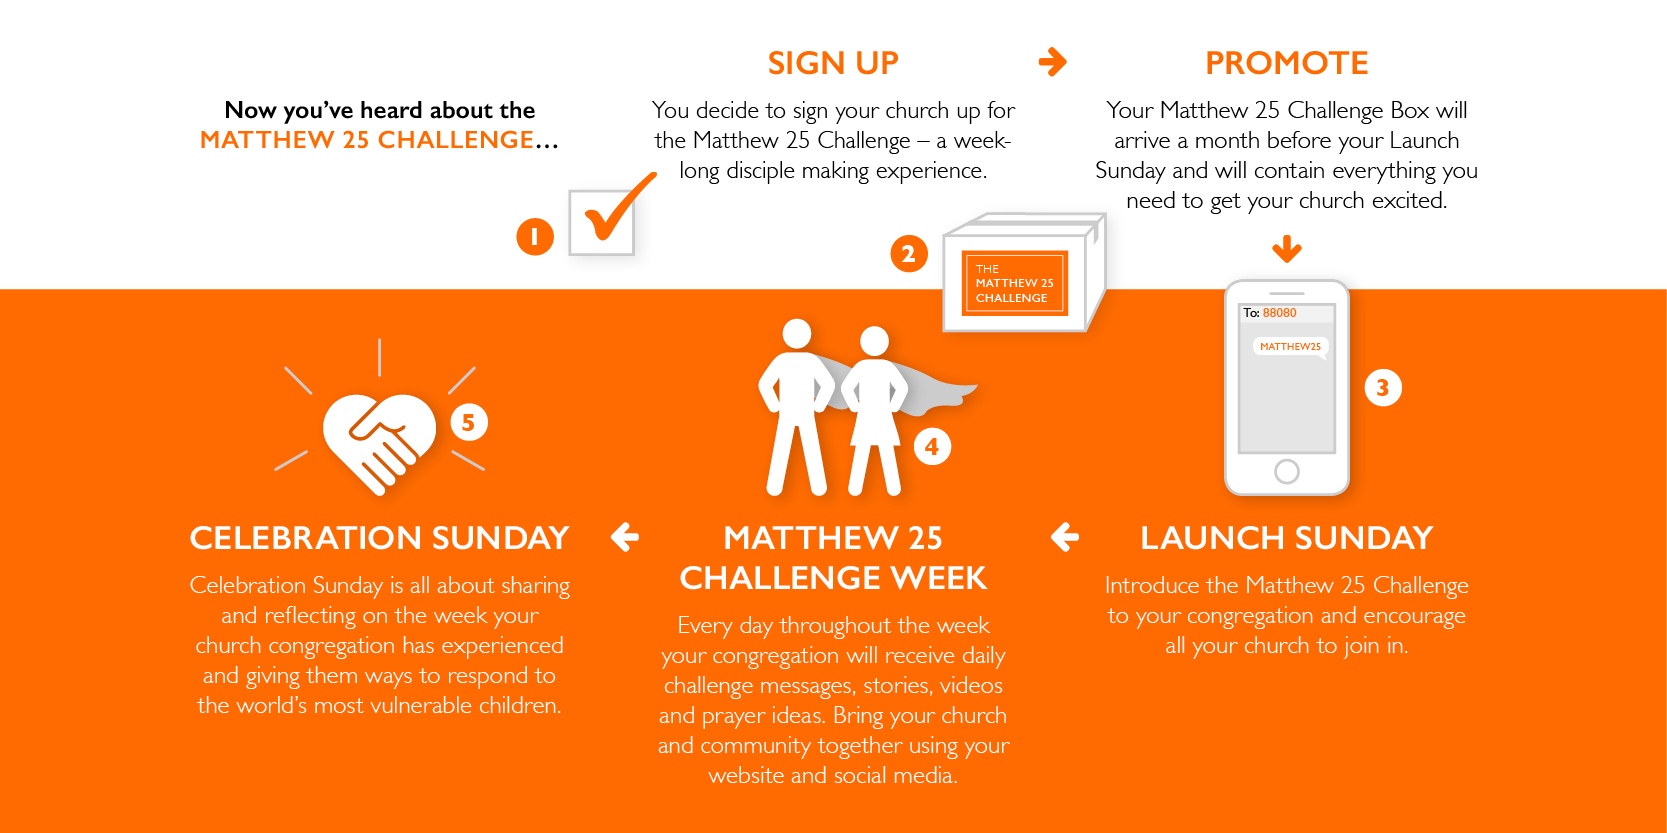 Sign up, promote, launch and celebrate